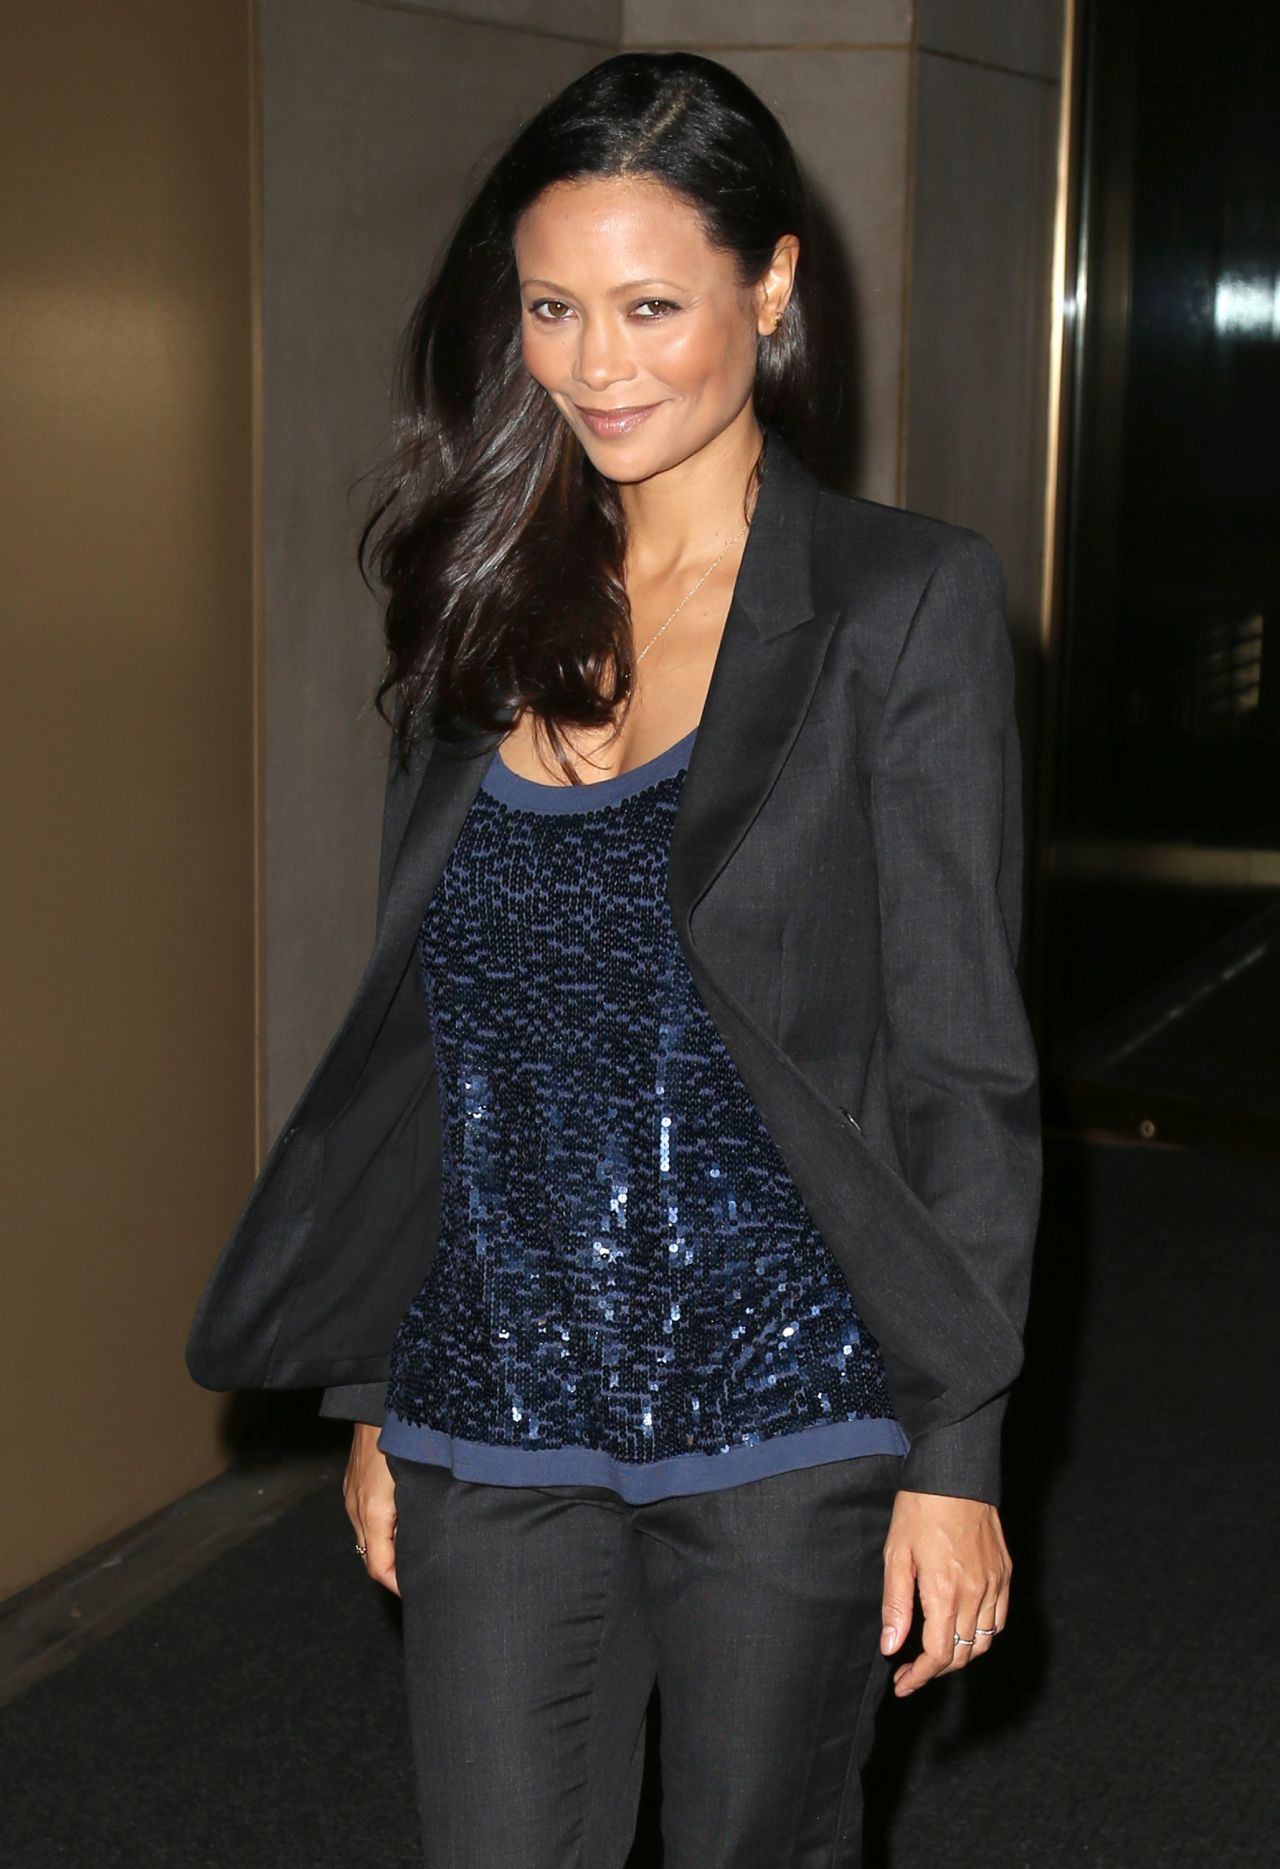 Thandie Newton Leaving the NBC Studios in NYC - May 2014